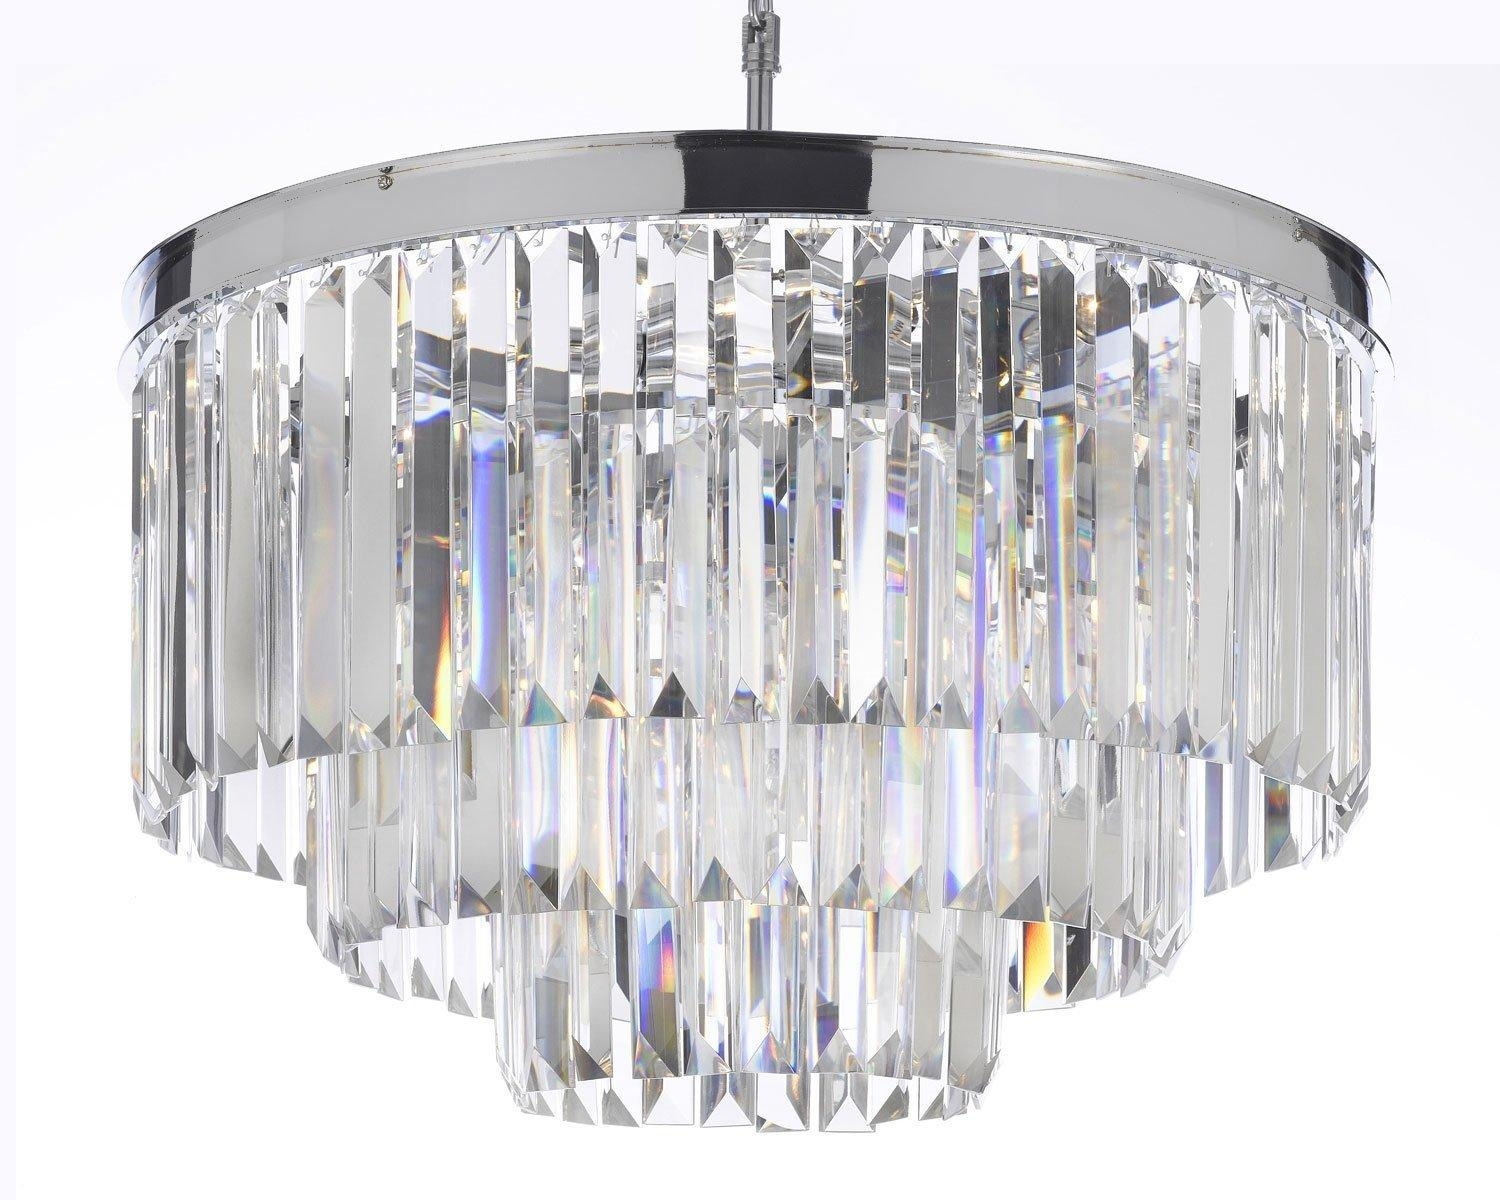 Odeon Empress Crystal Glass Fringe 3 Tier Chandelier Lighting Regarding 3 Tier Crystal Chandelier (Image 11 of 15)